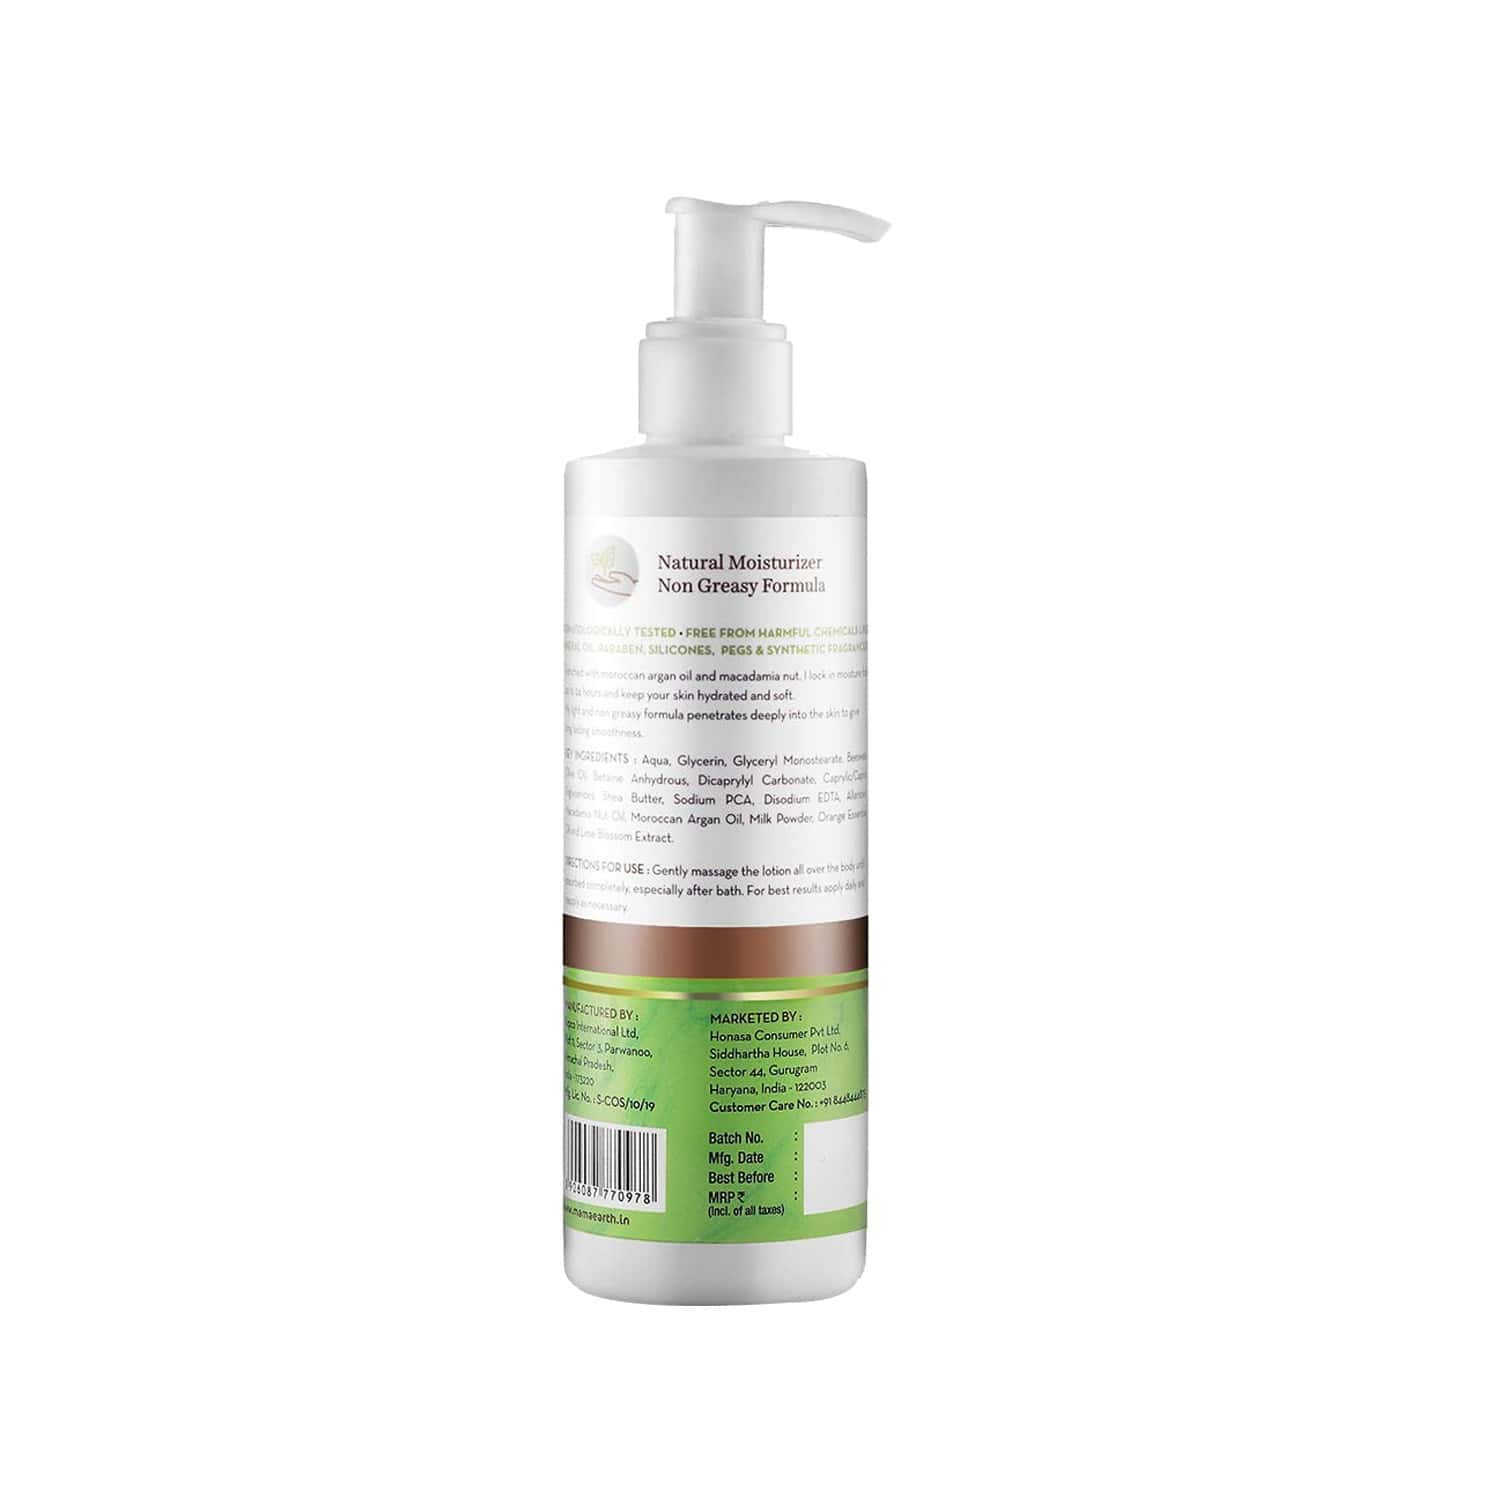 Mamaearth Healing Natural Body Lotion With Argan Oil & Macadamia Nut For Women & Men With Dry Skin - 250ml